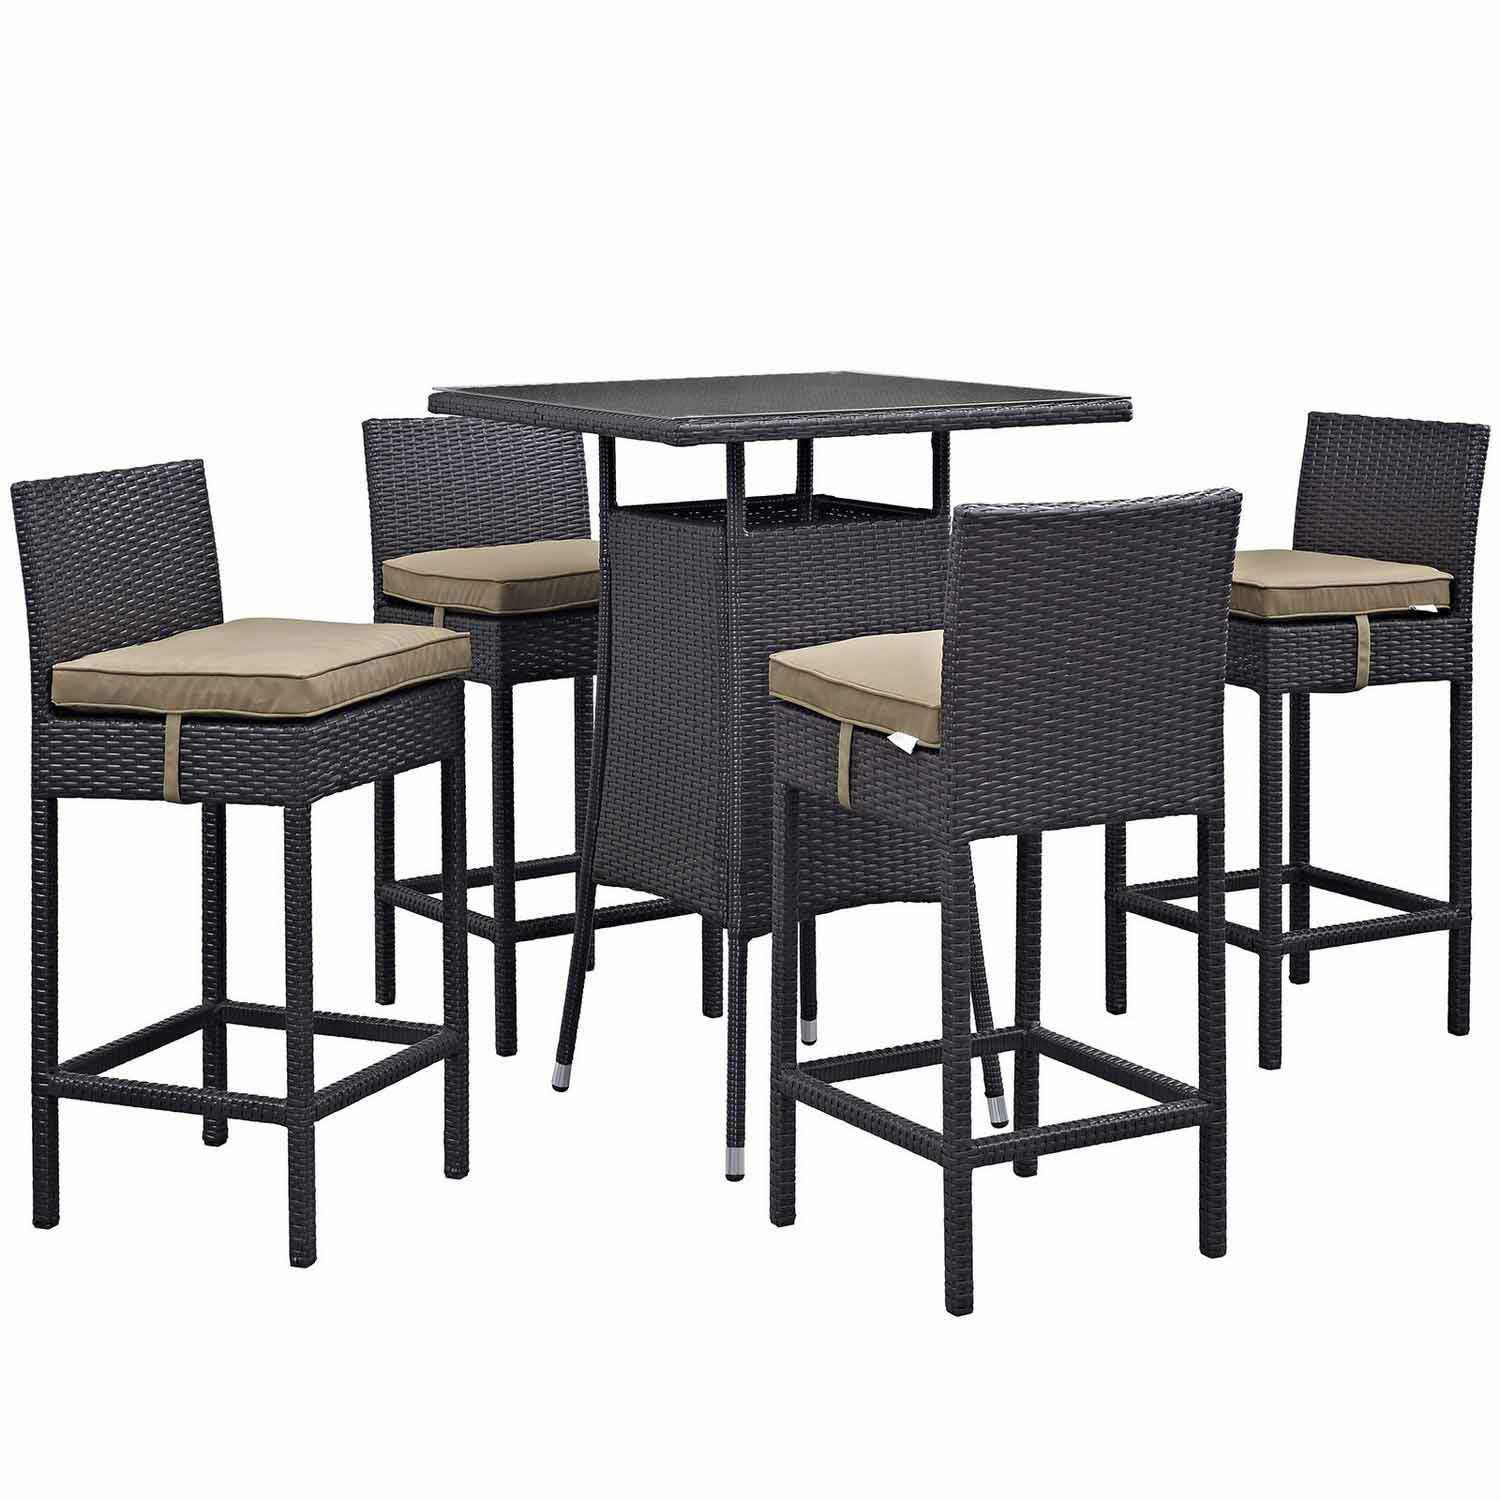 Modway Convene 5 Piece Outdoor Patio Pub Set - Espresso Mocha